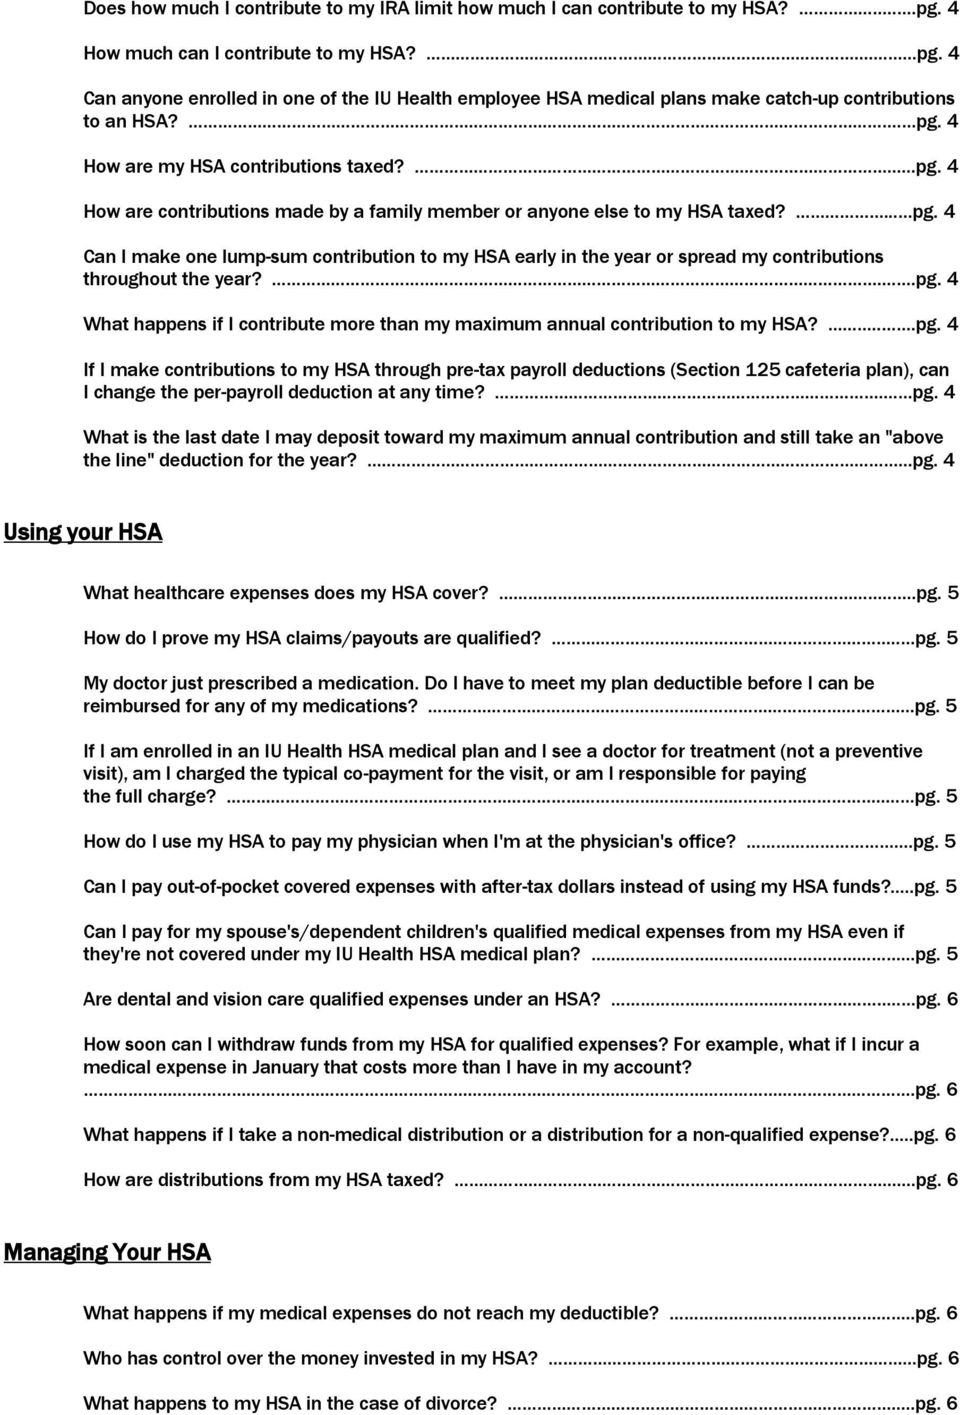 ..pg. 4 What happens if I contribute more than my maximum annual contribution to my HSA?...pg. 4 If I make contributions to my HSA through pre-tax payroll deductions (Section 125 cafeteria plan), can I change the per-payroll deduction at any time?